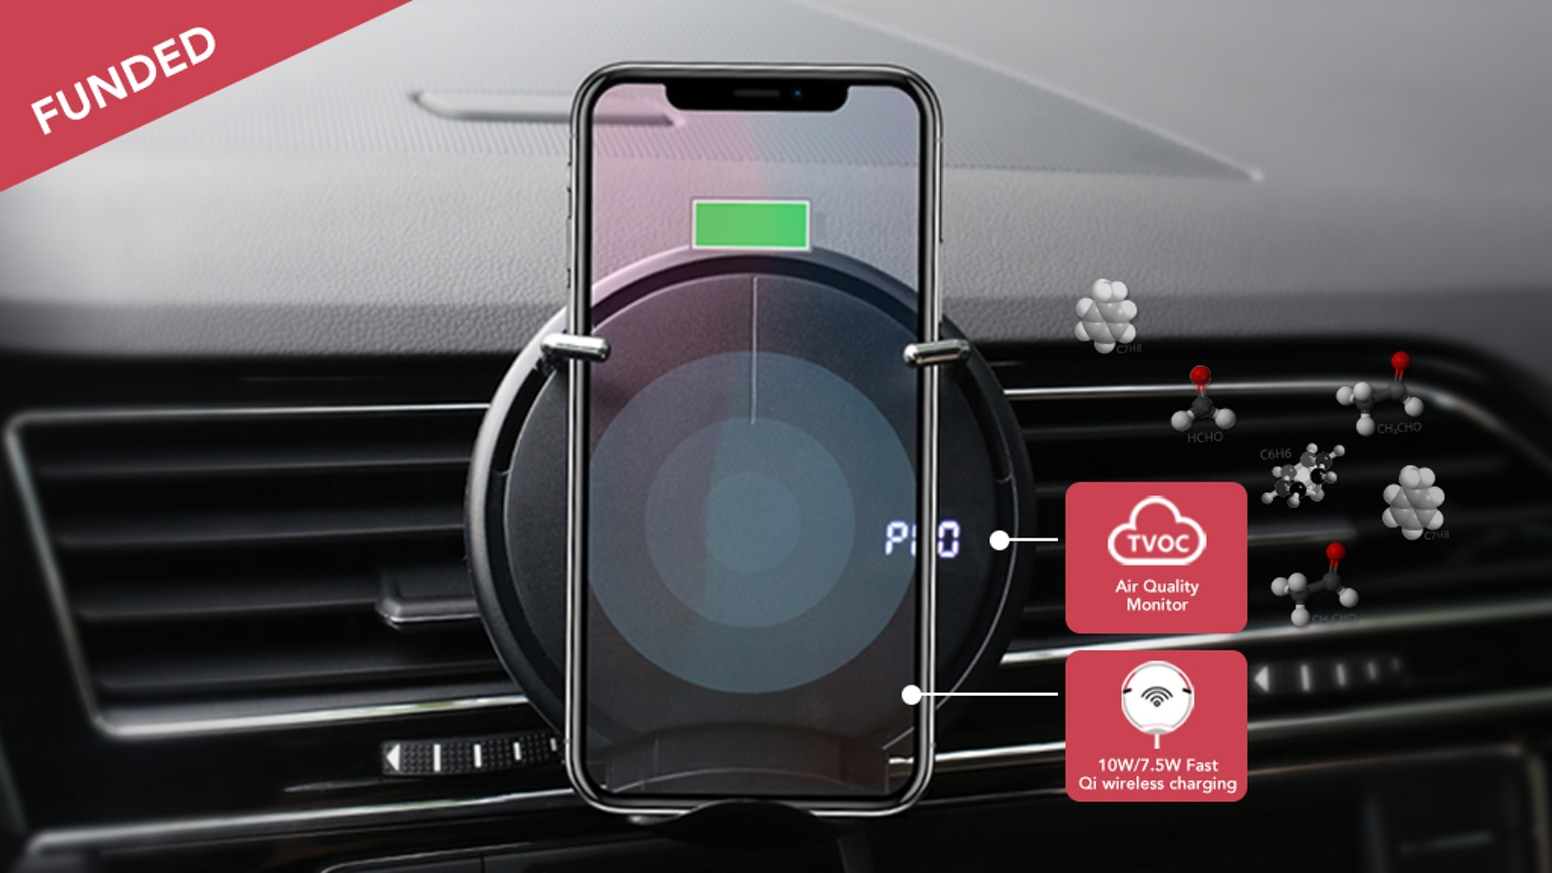 3-IN-1 FUNCTION: 10W/7.5W fast Qi wireless car charger & Air quality indicator & Gravity phone holder.